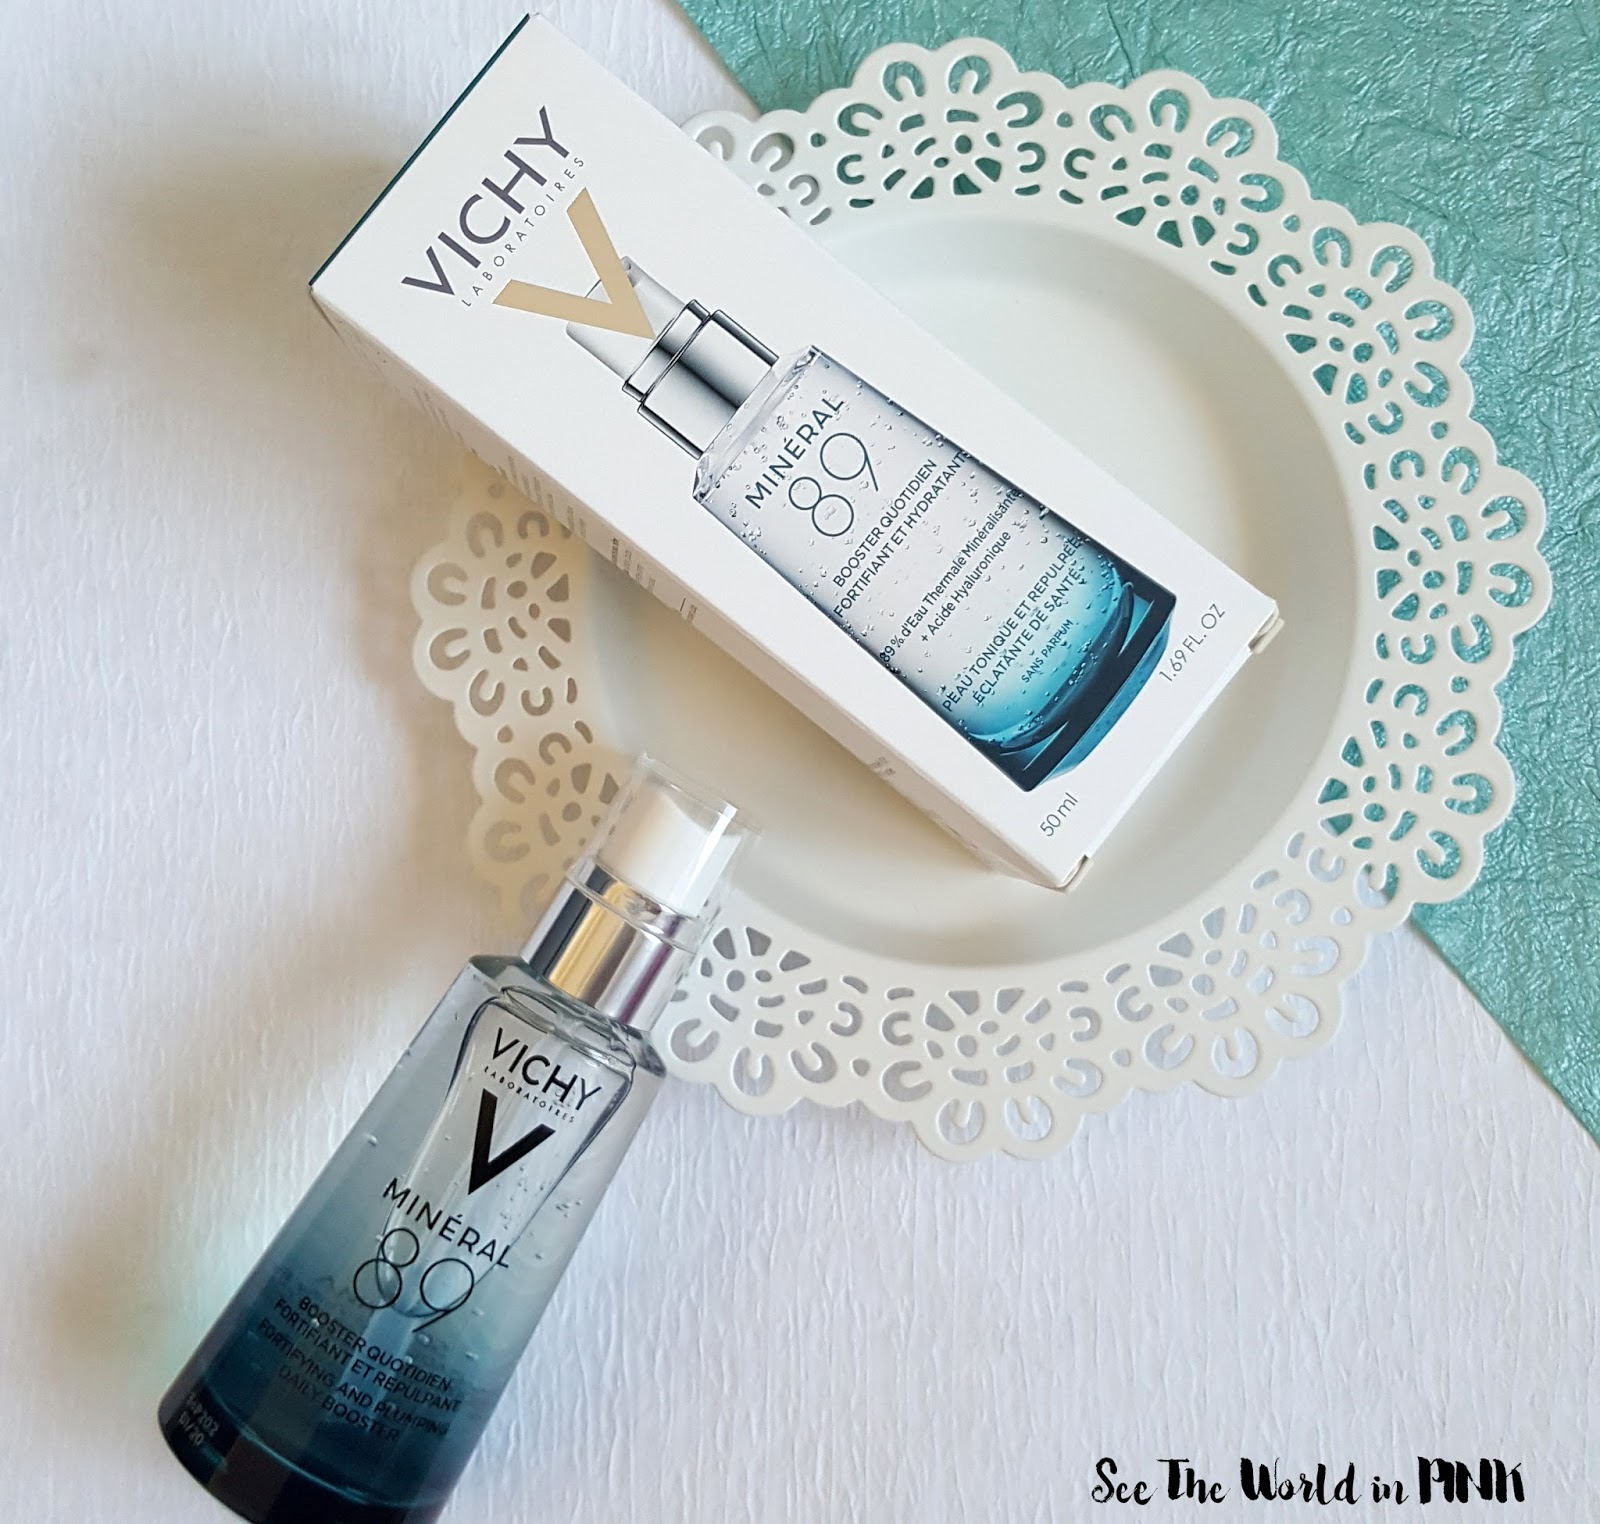 Skincare Sunday - Vichy Mineral 89 Fortifying Daily Skin Booster Review!